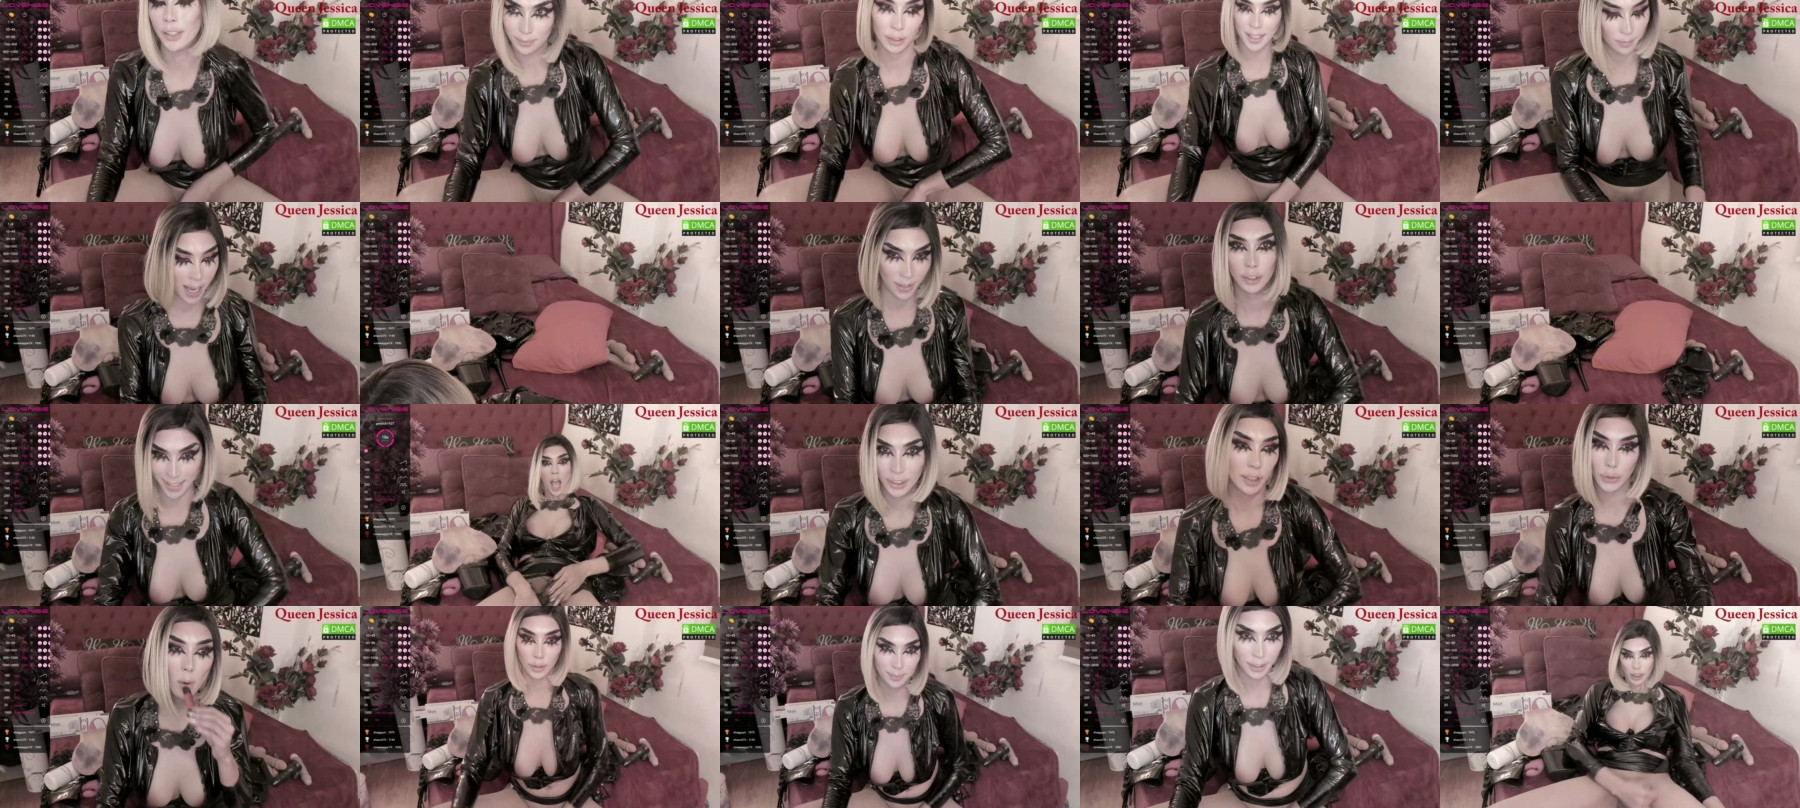 Queenmaniacts ts 16-04-2021 Chaturbate trans Show